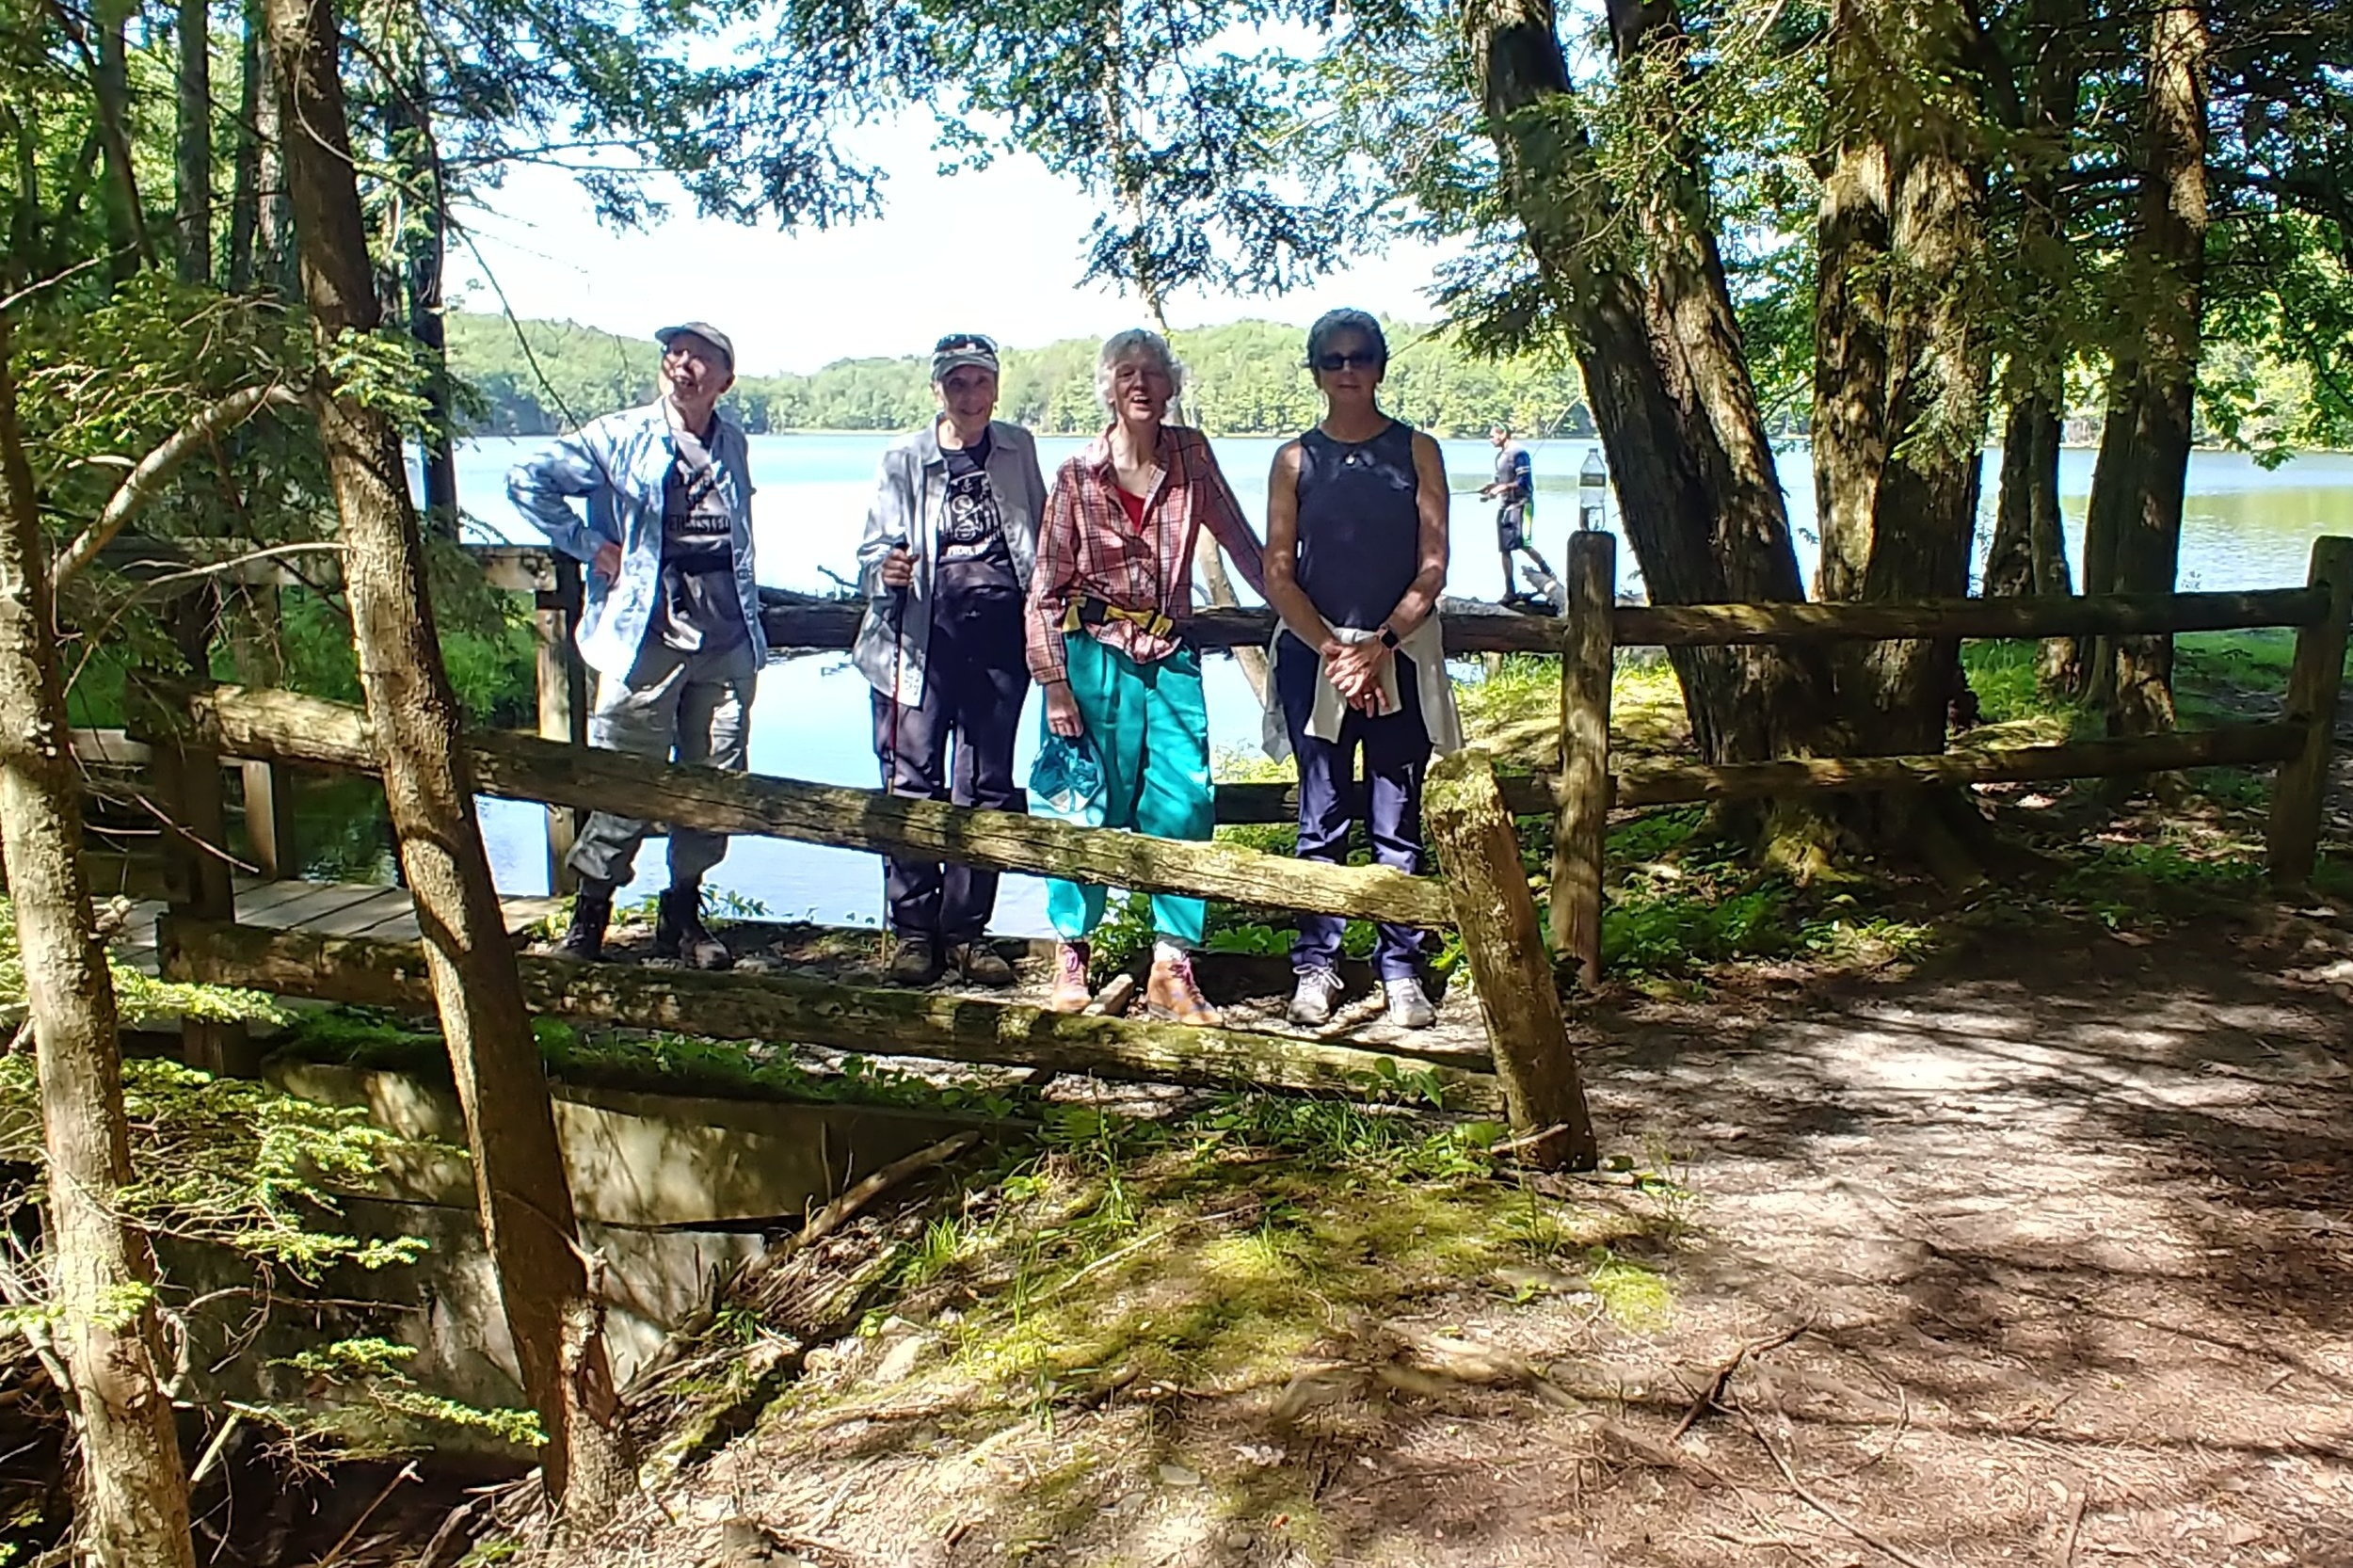 Enjoying a hike around Shaver Pond after the picnic